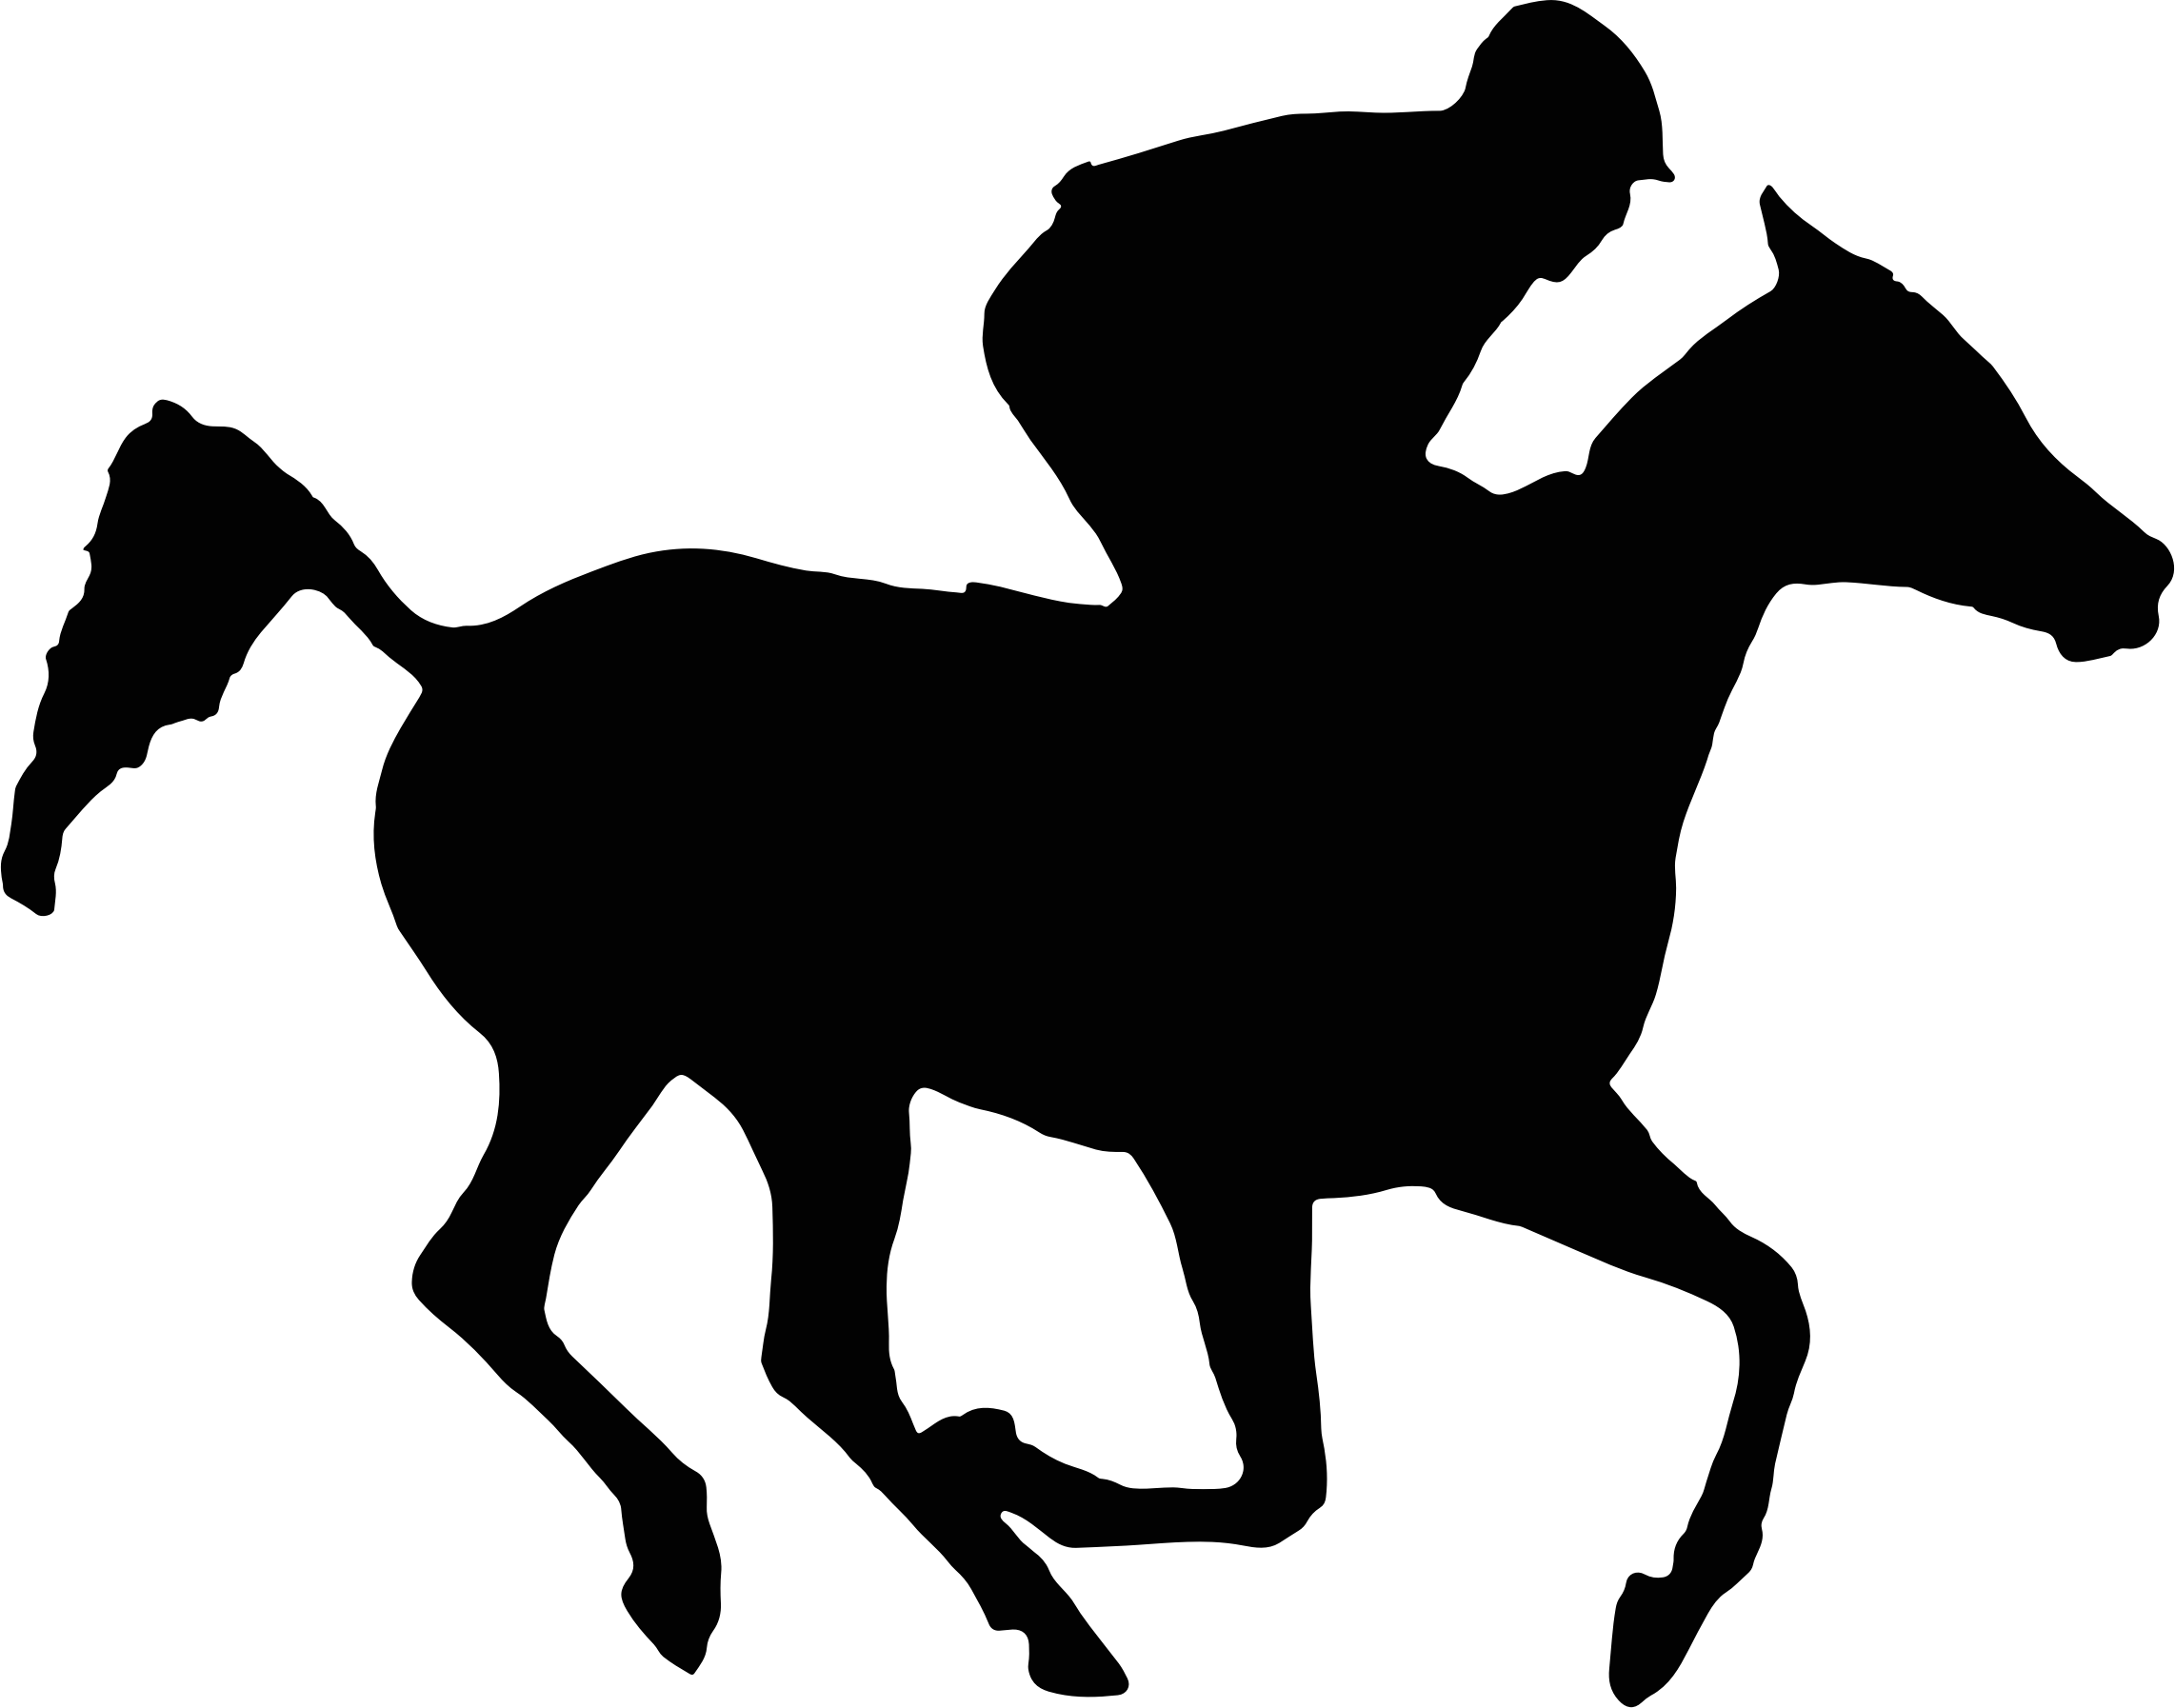 vector library Racing Horse Silhouette at GetDrawings